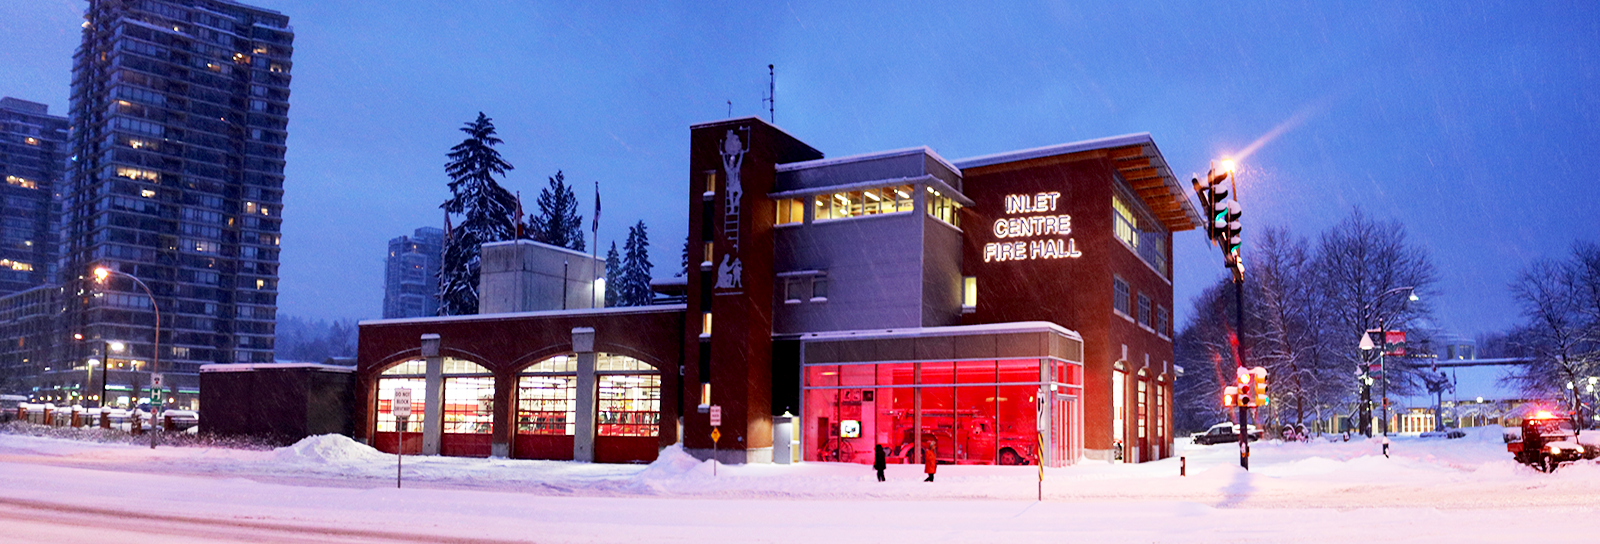 Fire Hall Picture in the snow